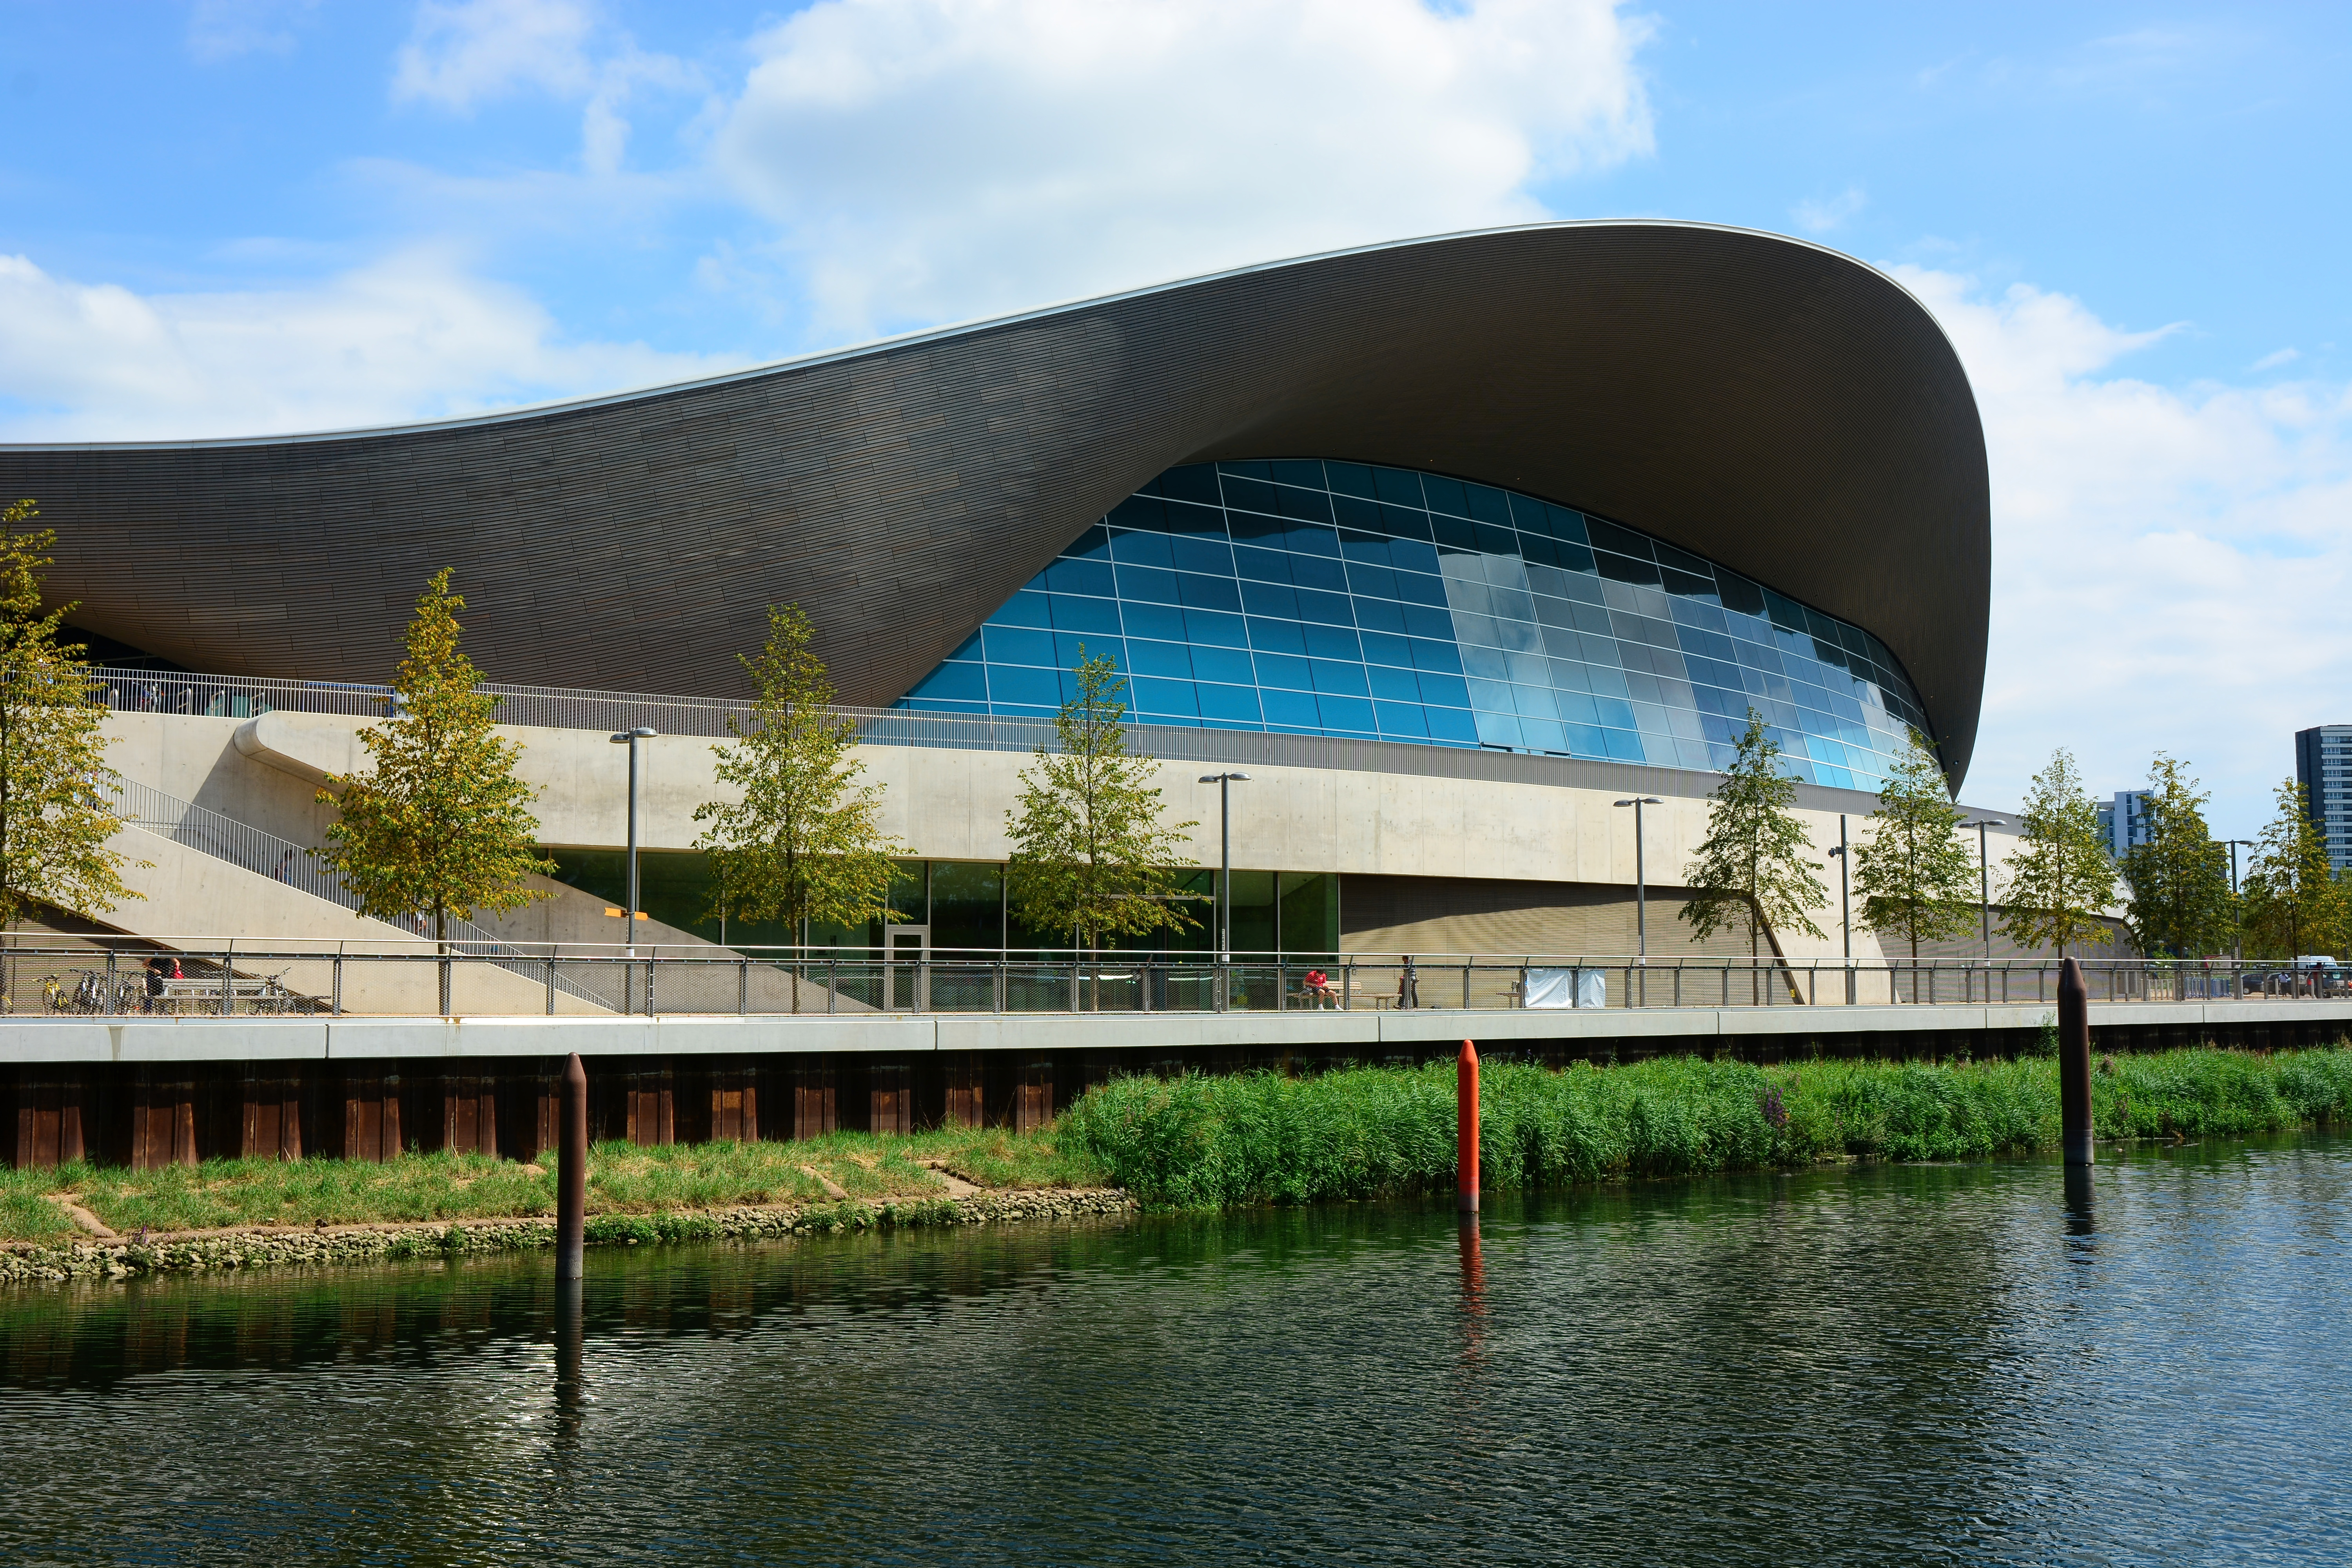 London Aquatics Centre made Watertight with GCP Preprufe® Waterproofing System